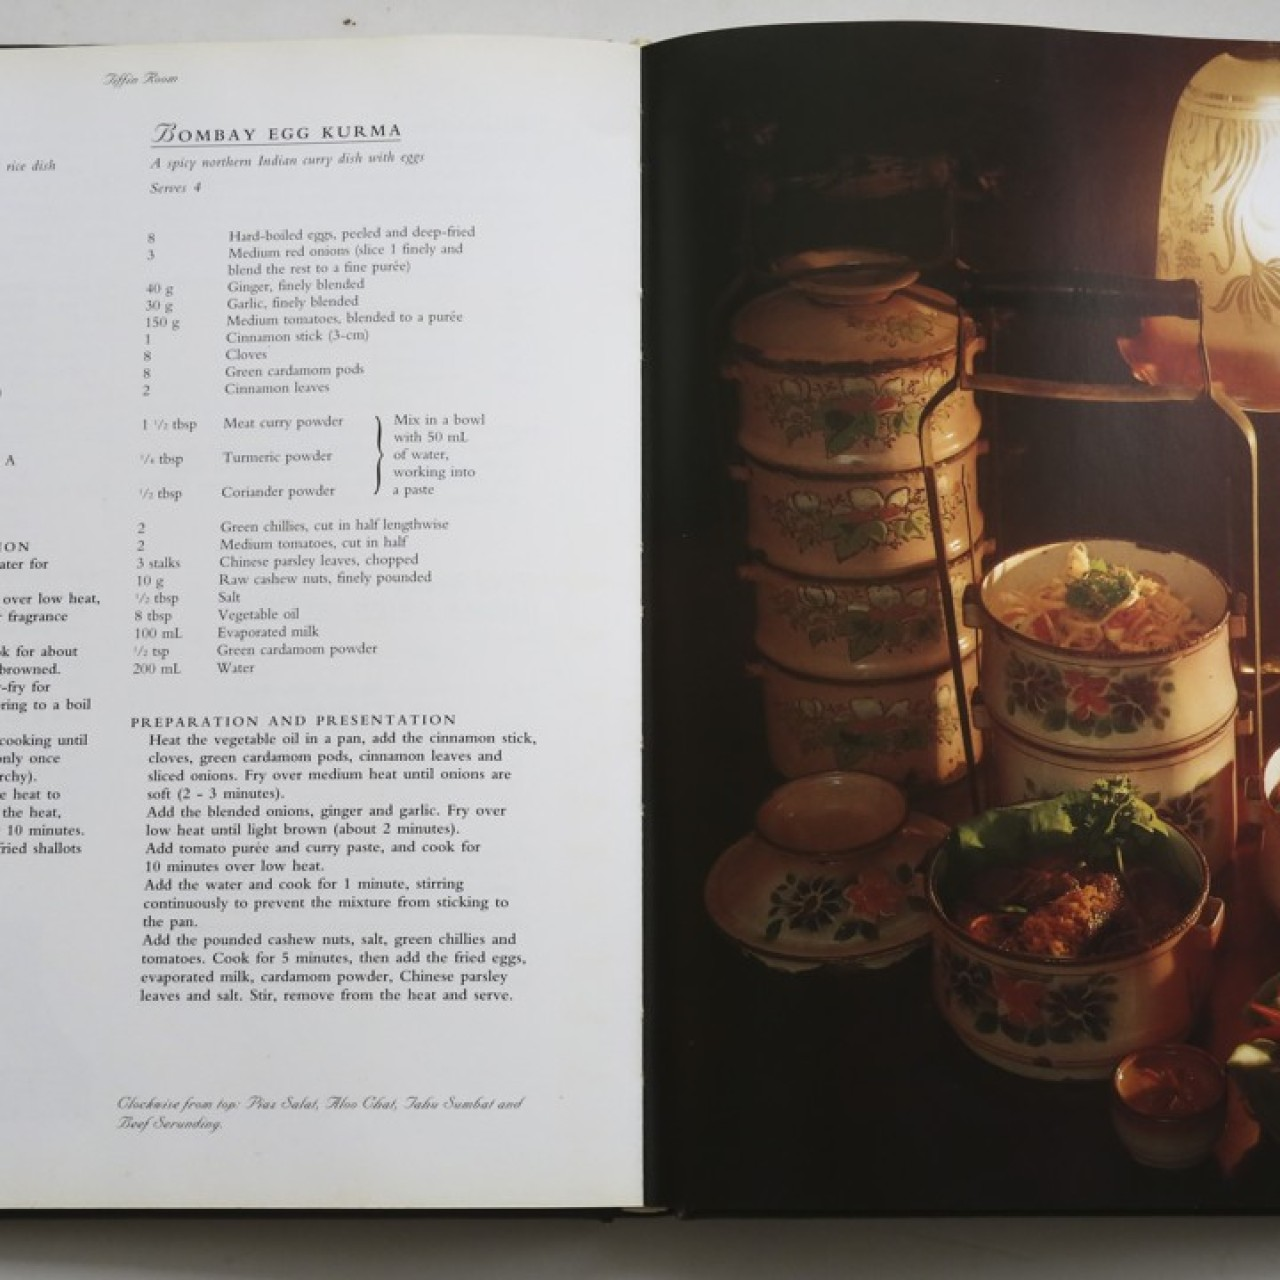 The Raffles Hotel Cookbook: delicious recipes served up with a